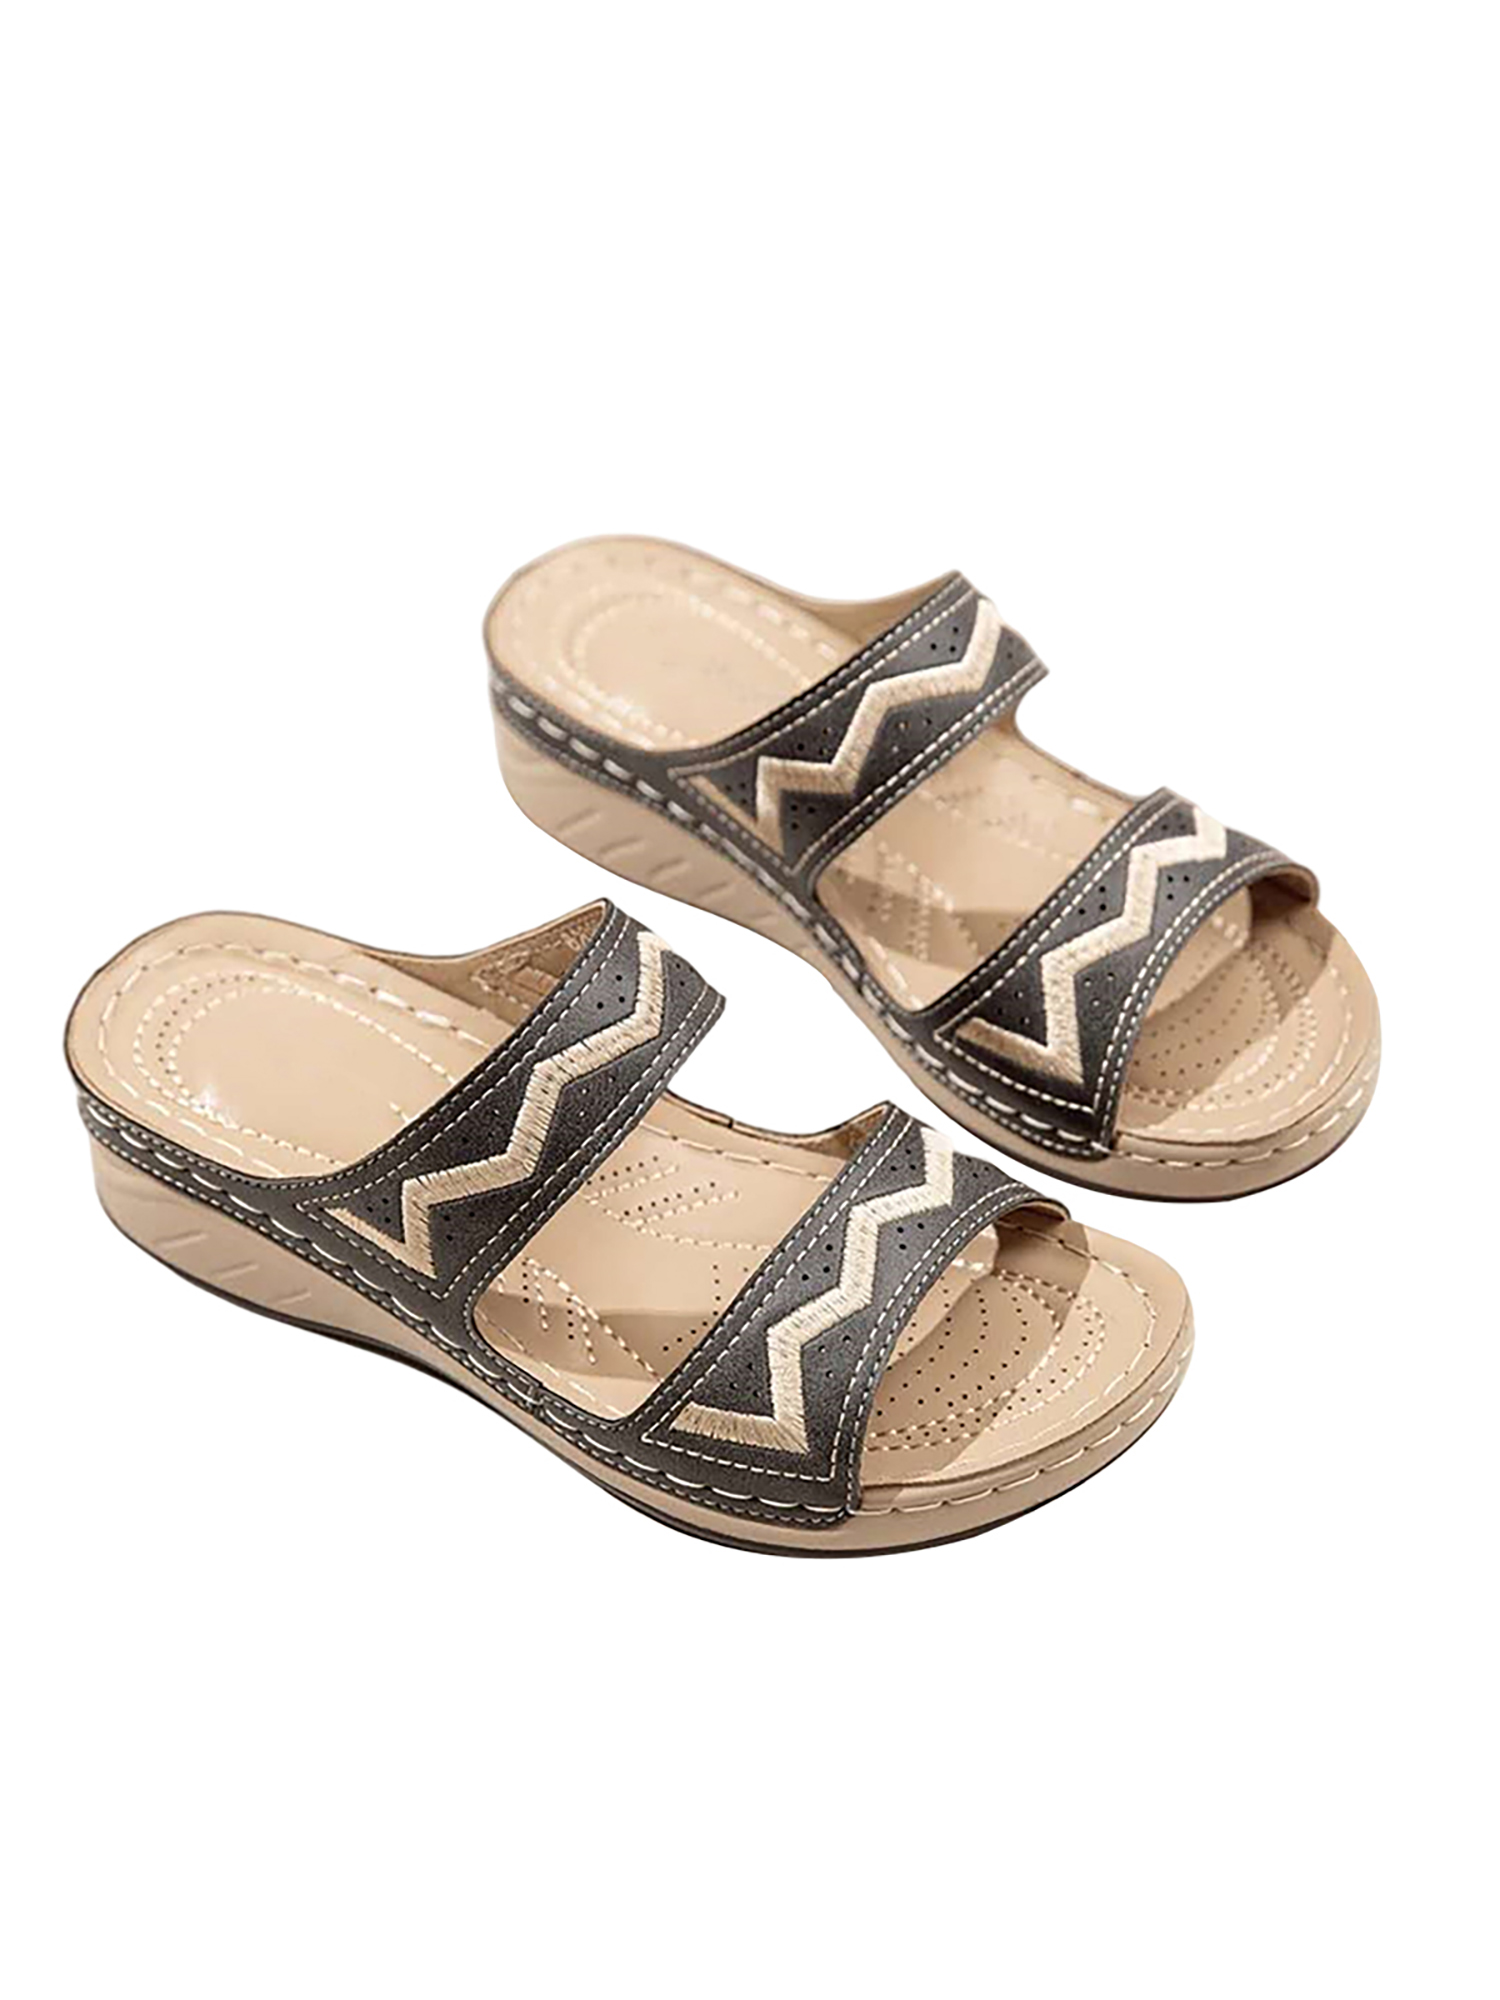 Womens Summer Mules Sliders Slip On Sandals Ladies Open Toe Comfy Shoes Size